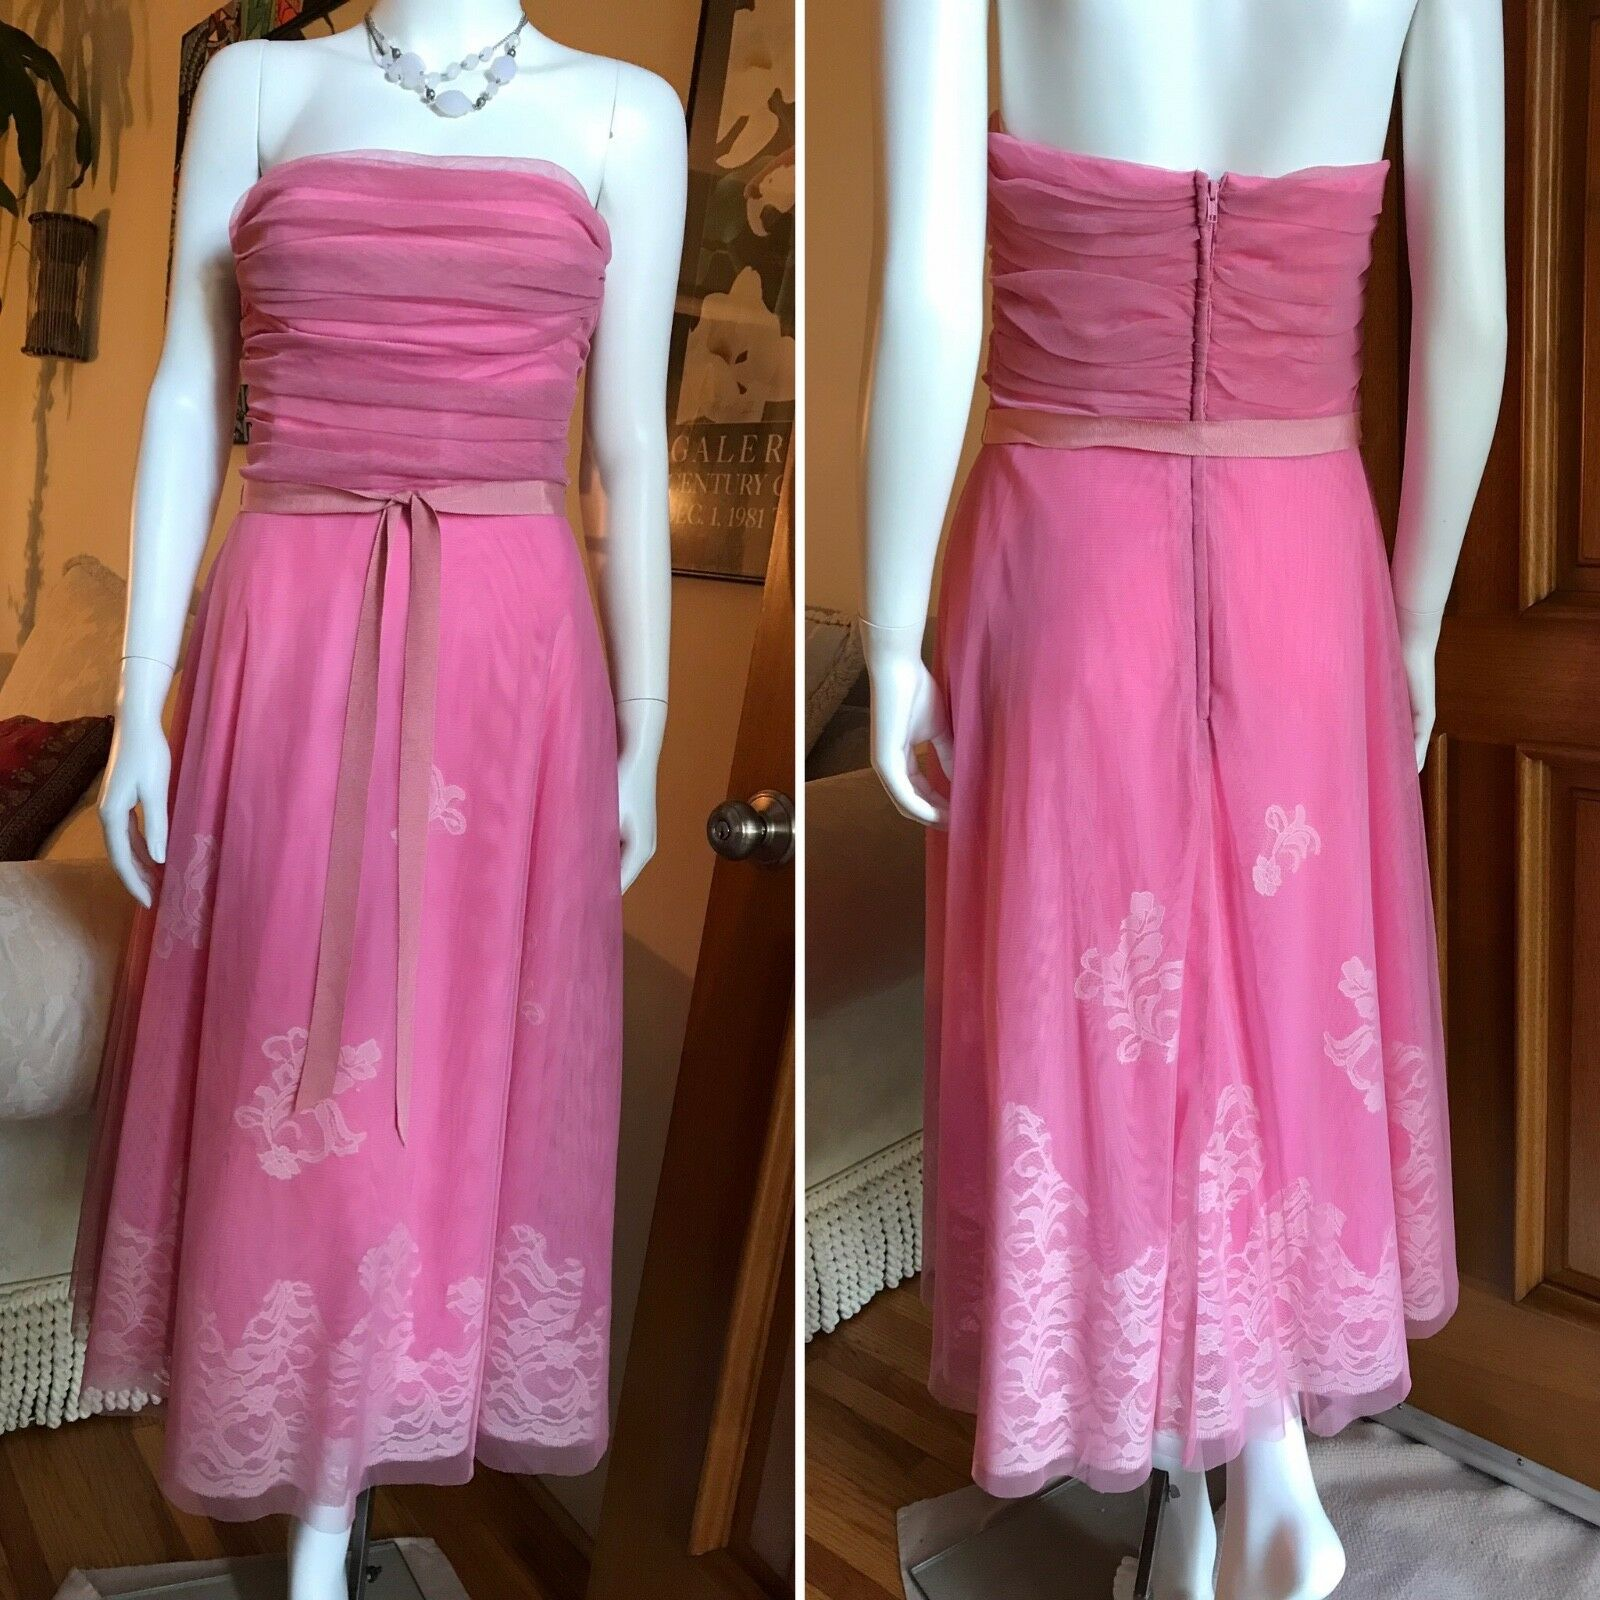 280 NWT BCBG Max Azria 10 M M M Strapless Pink Dress Romantic 50s Dusty EASTER Lace 6b15a7